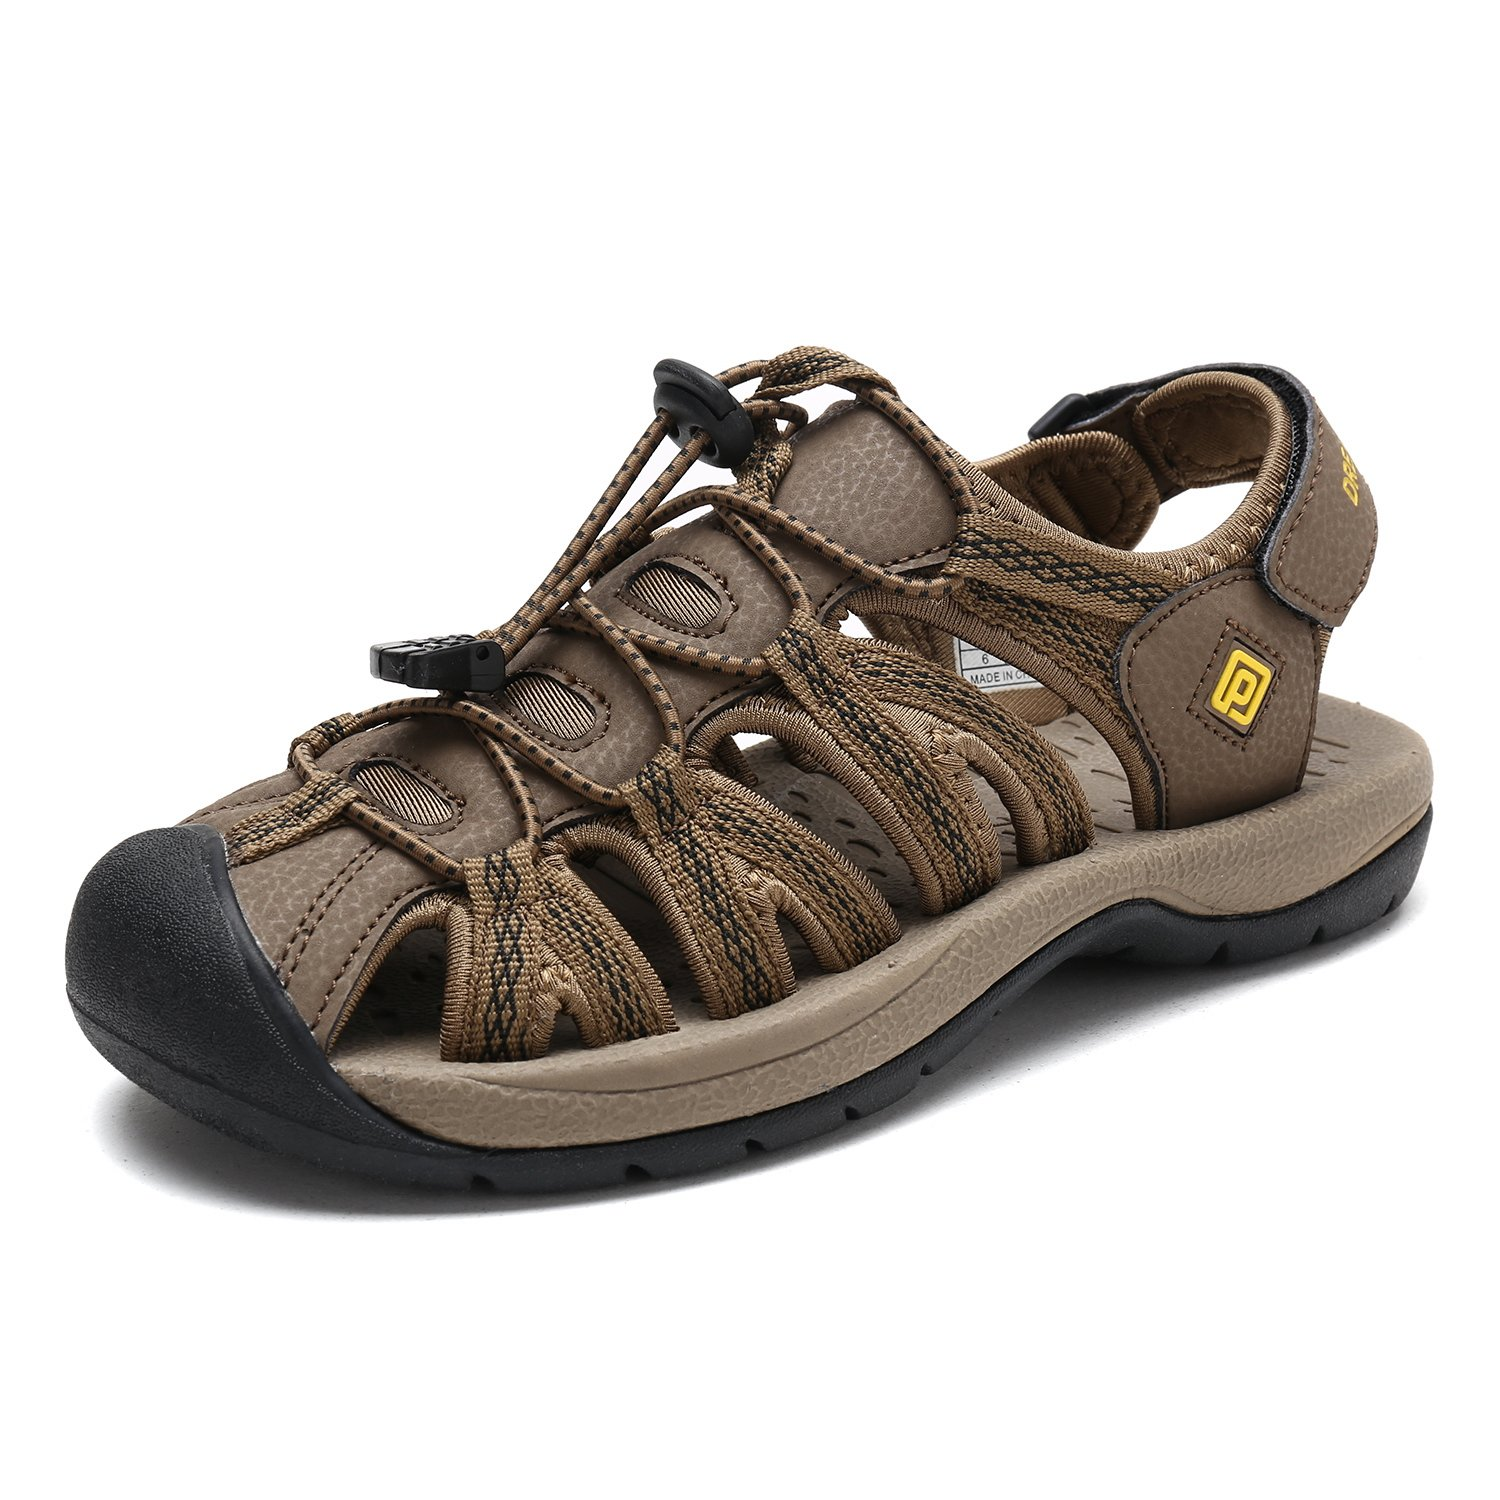 DREAM PAIRS Women's 160912-W Adventurous Summer Outdoor Sandals B077GDDJ98 11 B(M) US|Khaki Yellow